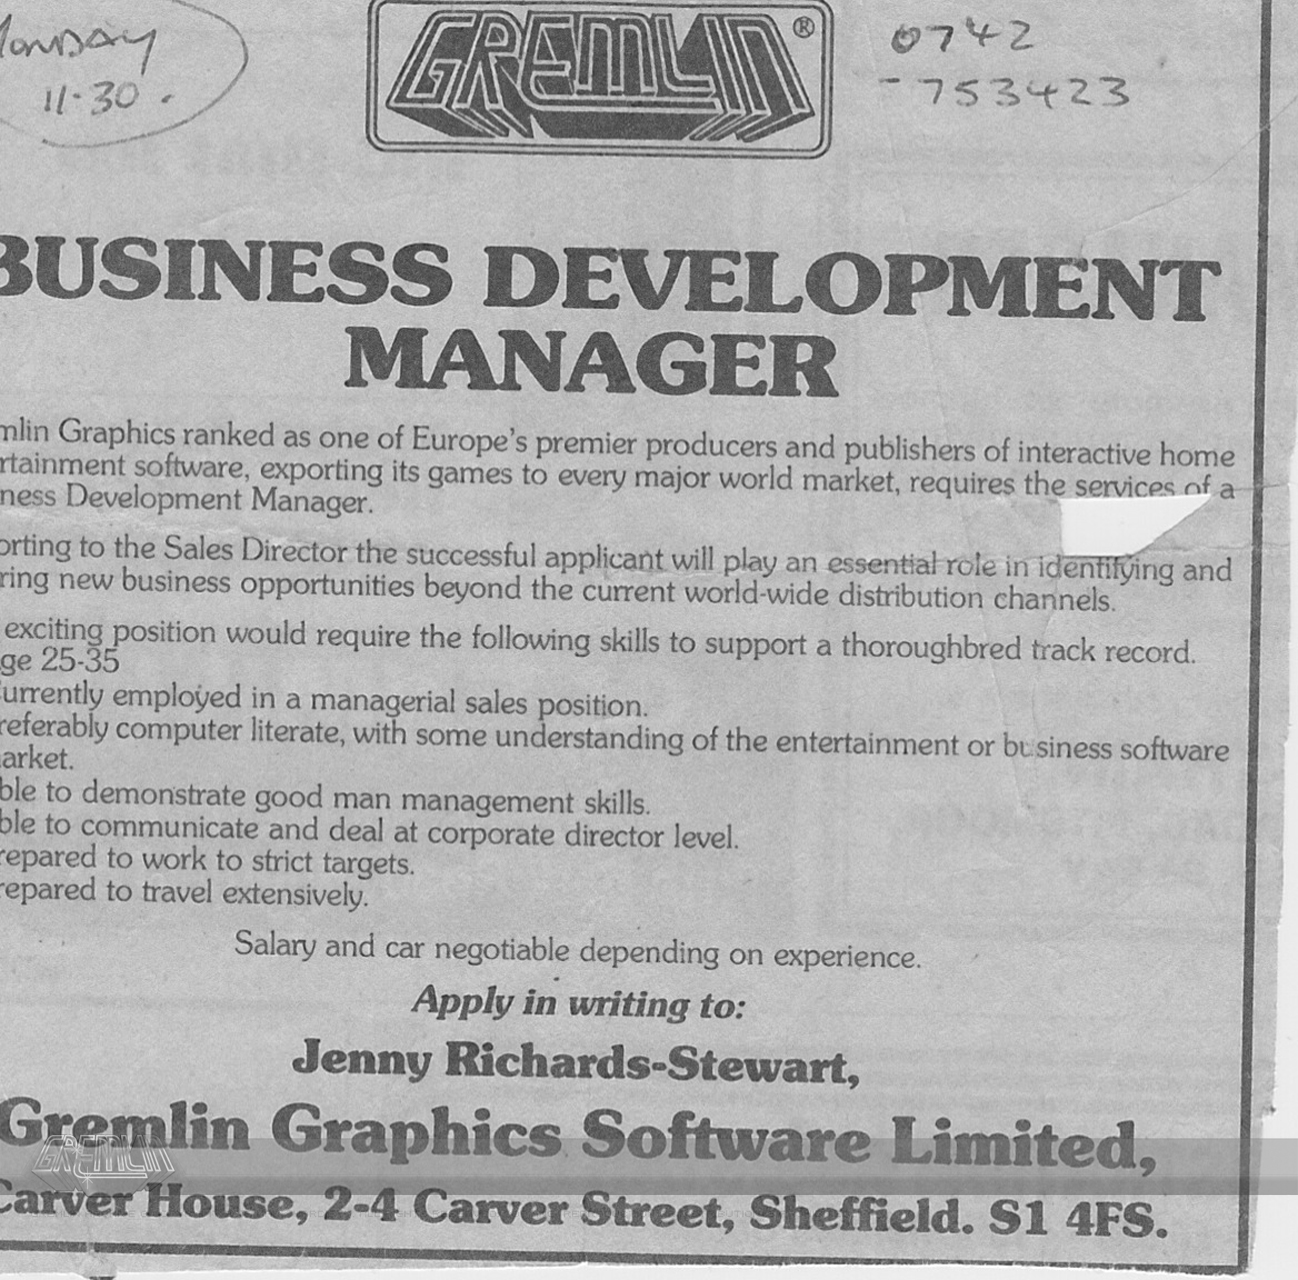 Business Development Manager Advert